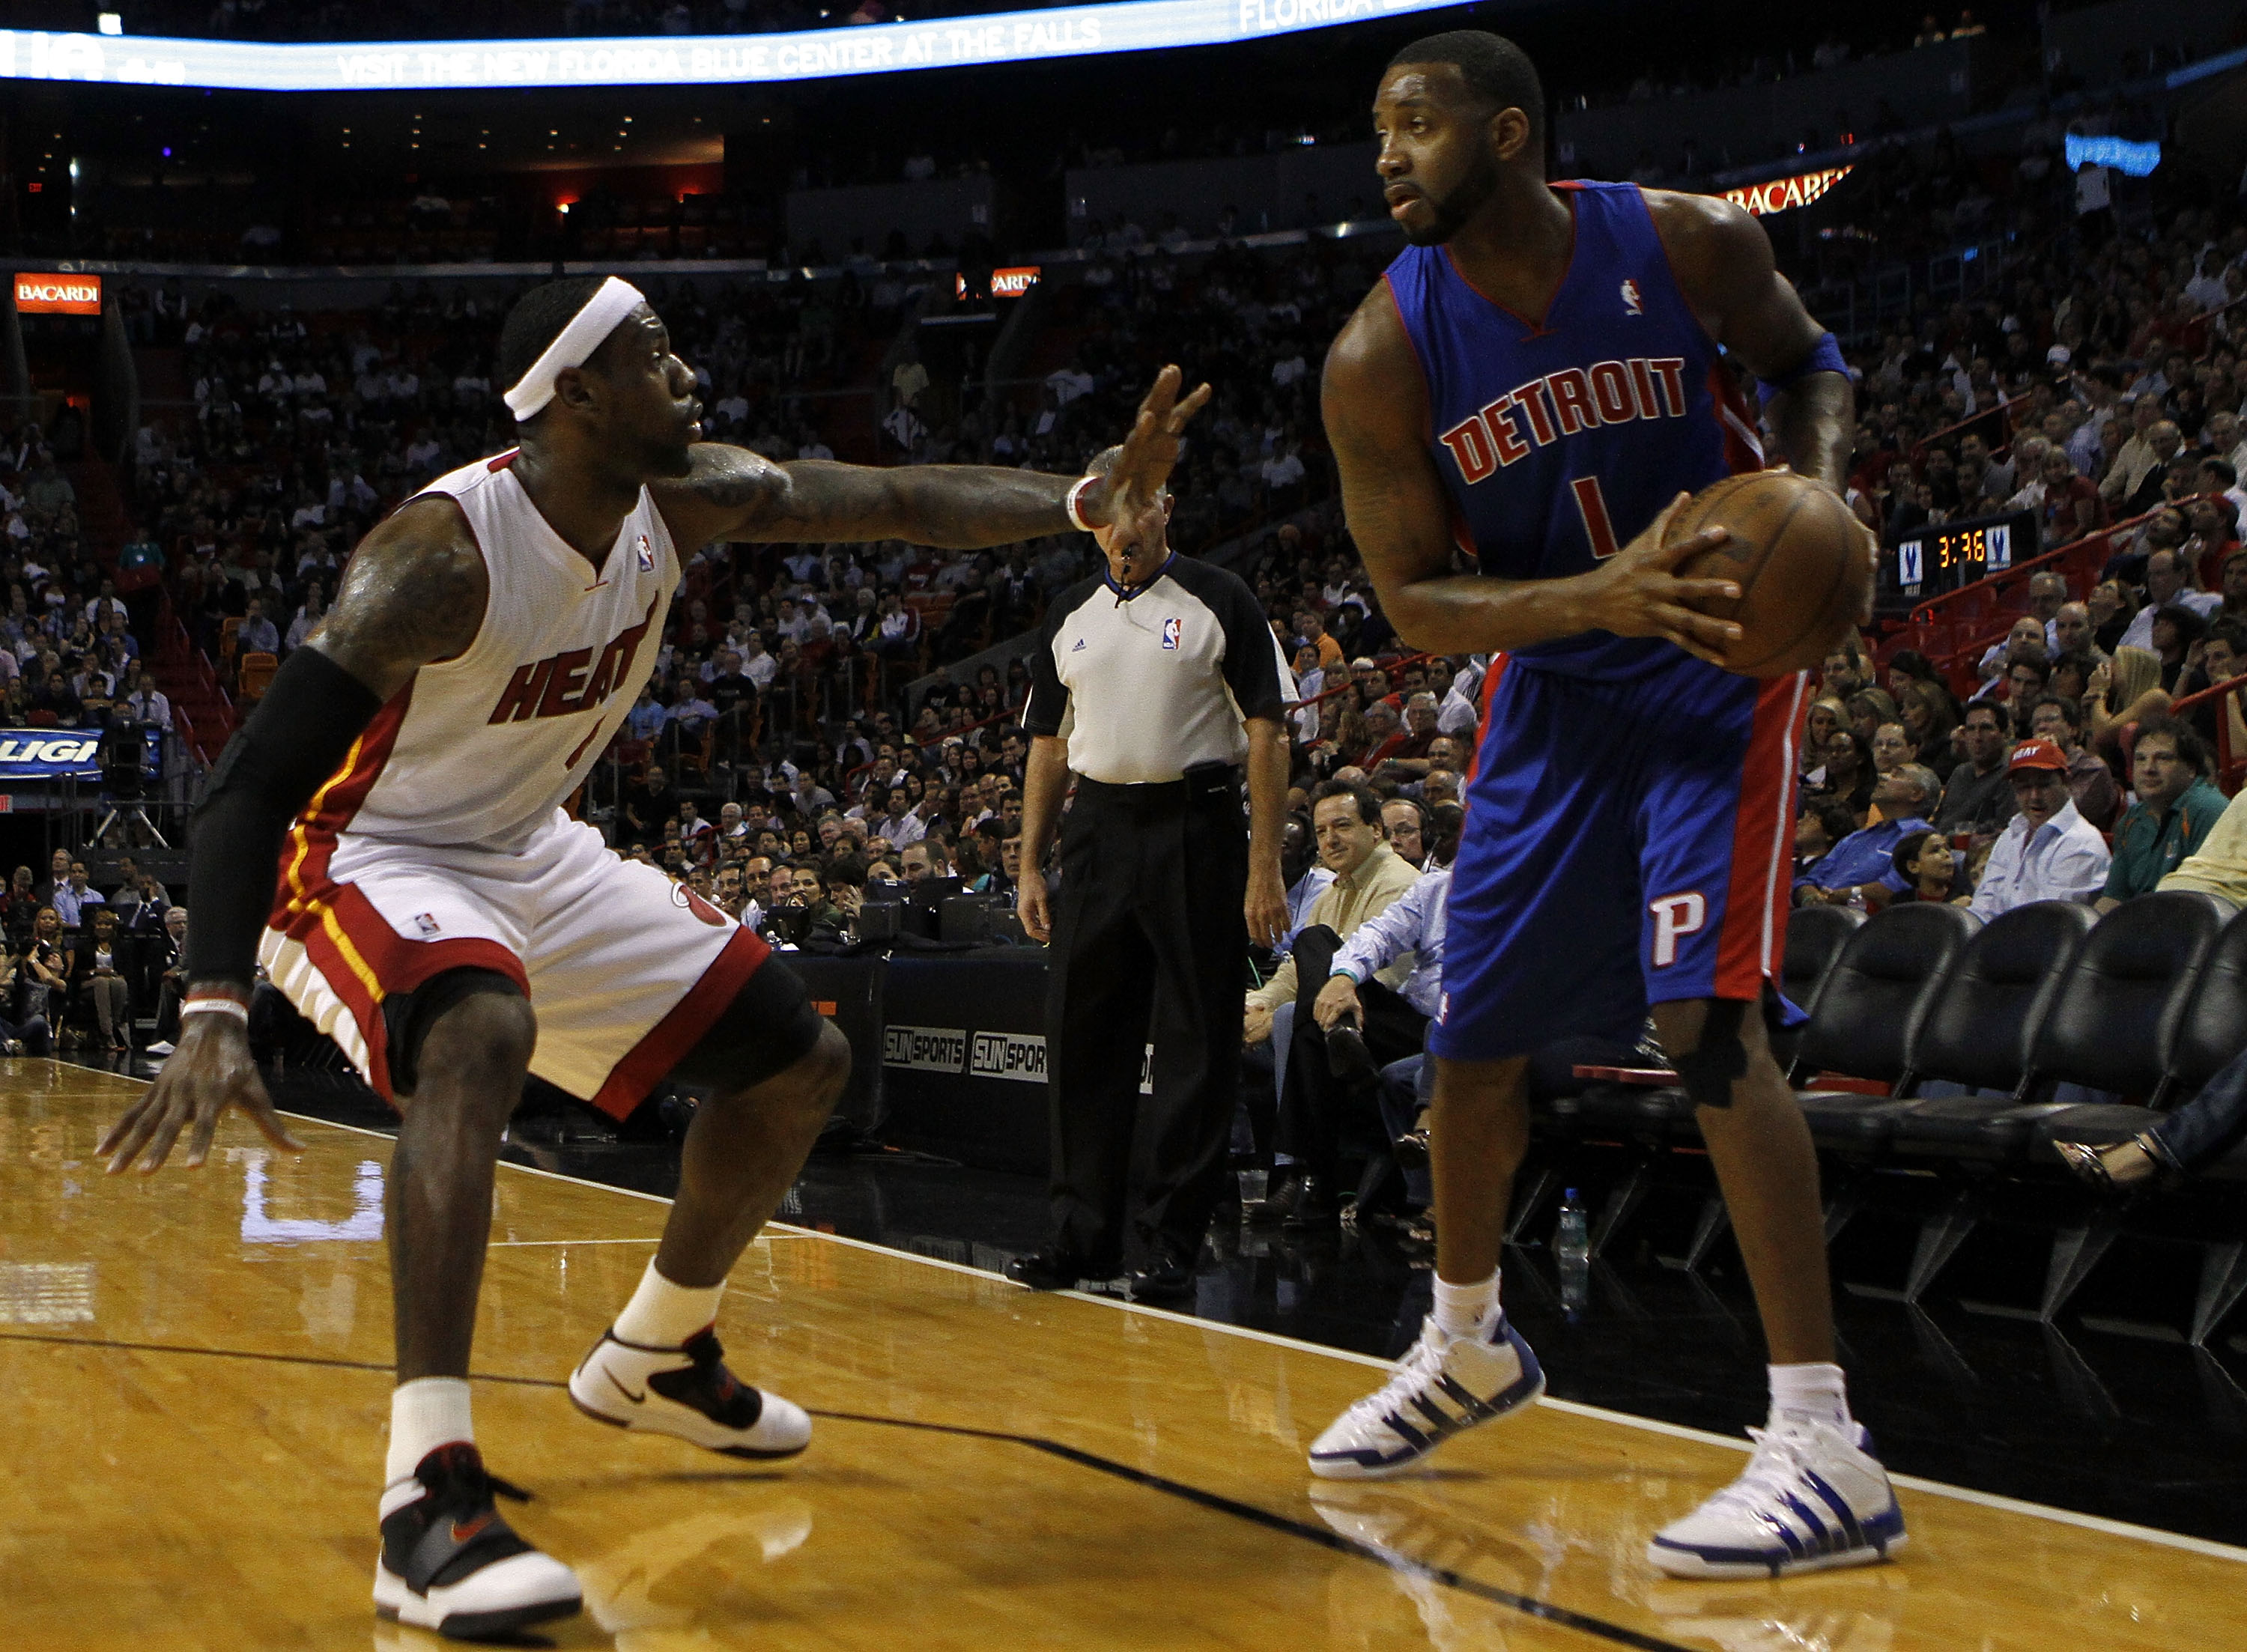 MIAMI - OCTOBER 05:  Forward LeBron James #6 of the Miami Heat takes on giard Tracy McGrady #1of the Detroit Pistons on October 5, 2010 in Miami, Florida.  NOTE TO USER: User expressly acknowledges and agrees that, by downloading and or using this photogr